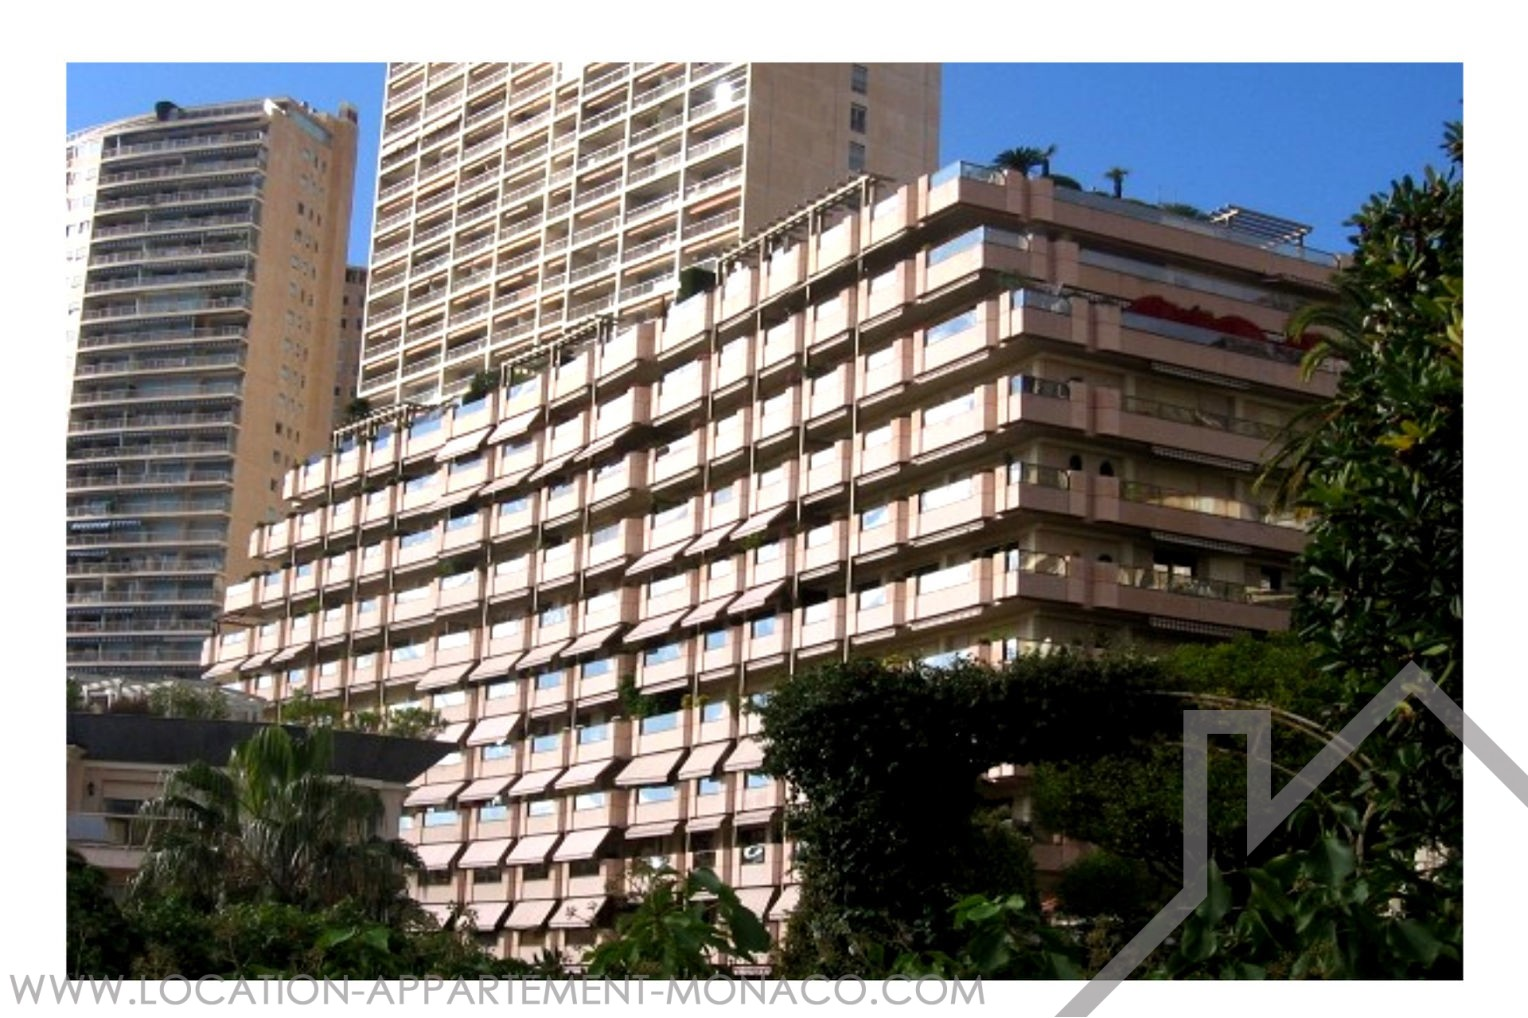 ROC FLEURI - Apartments for rent in Monaco